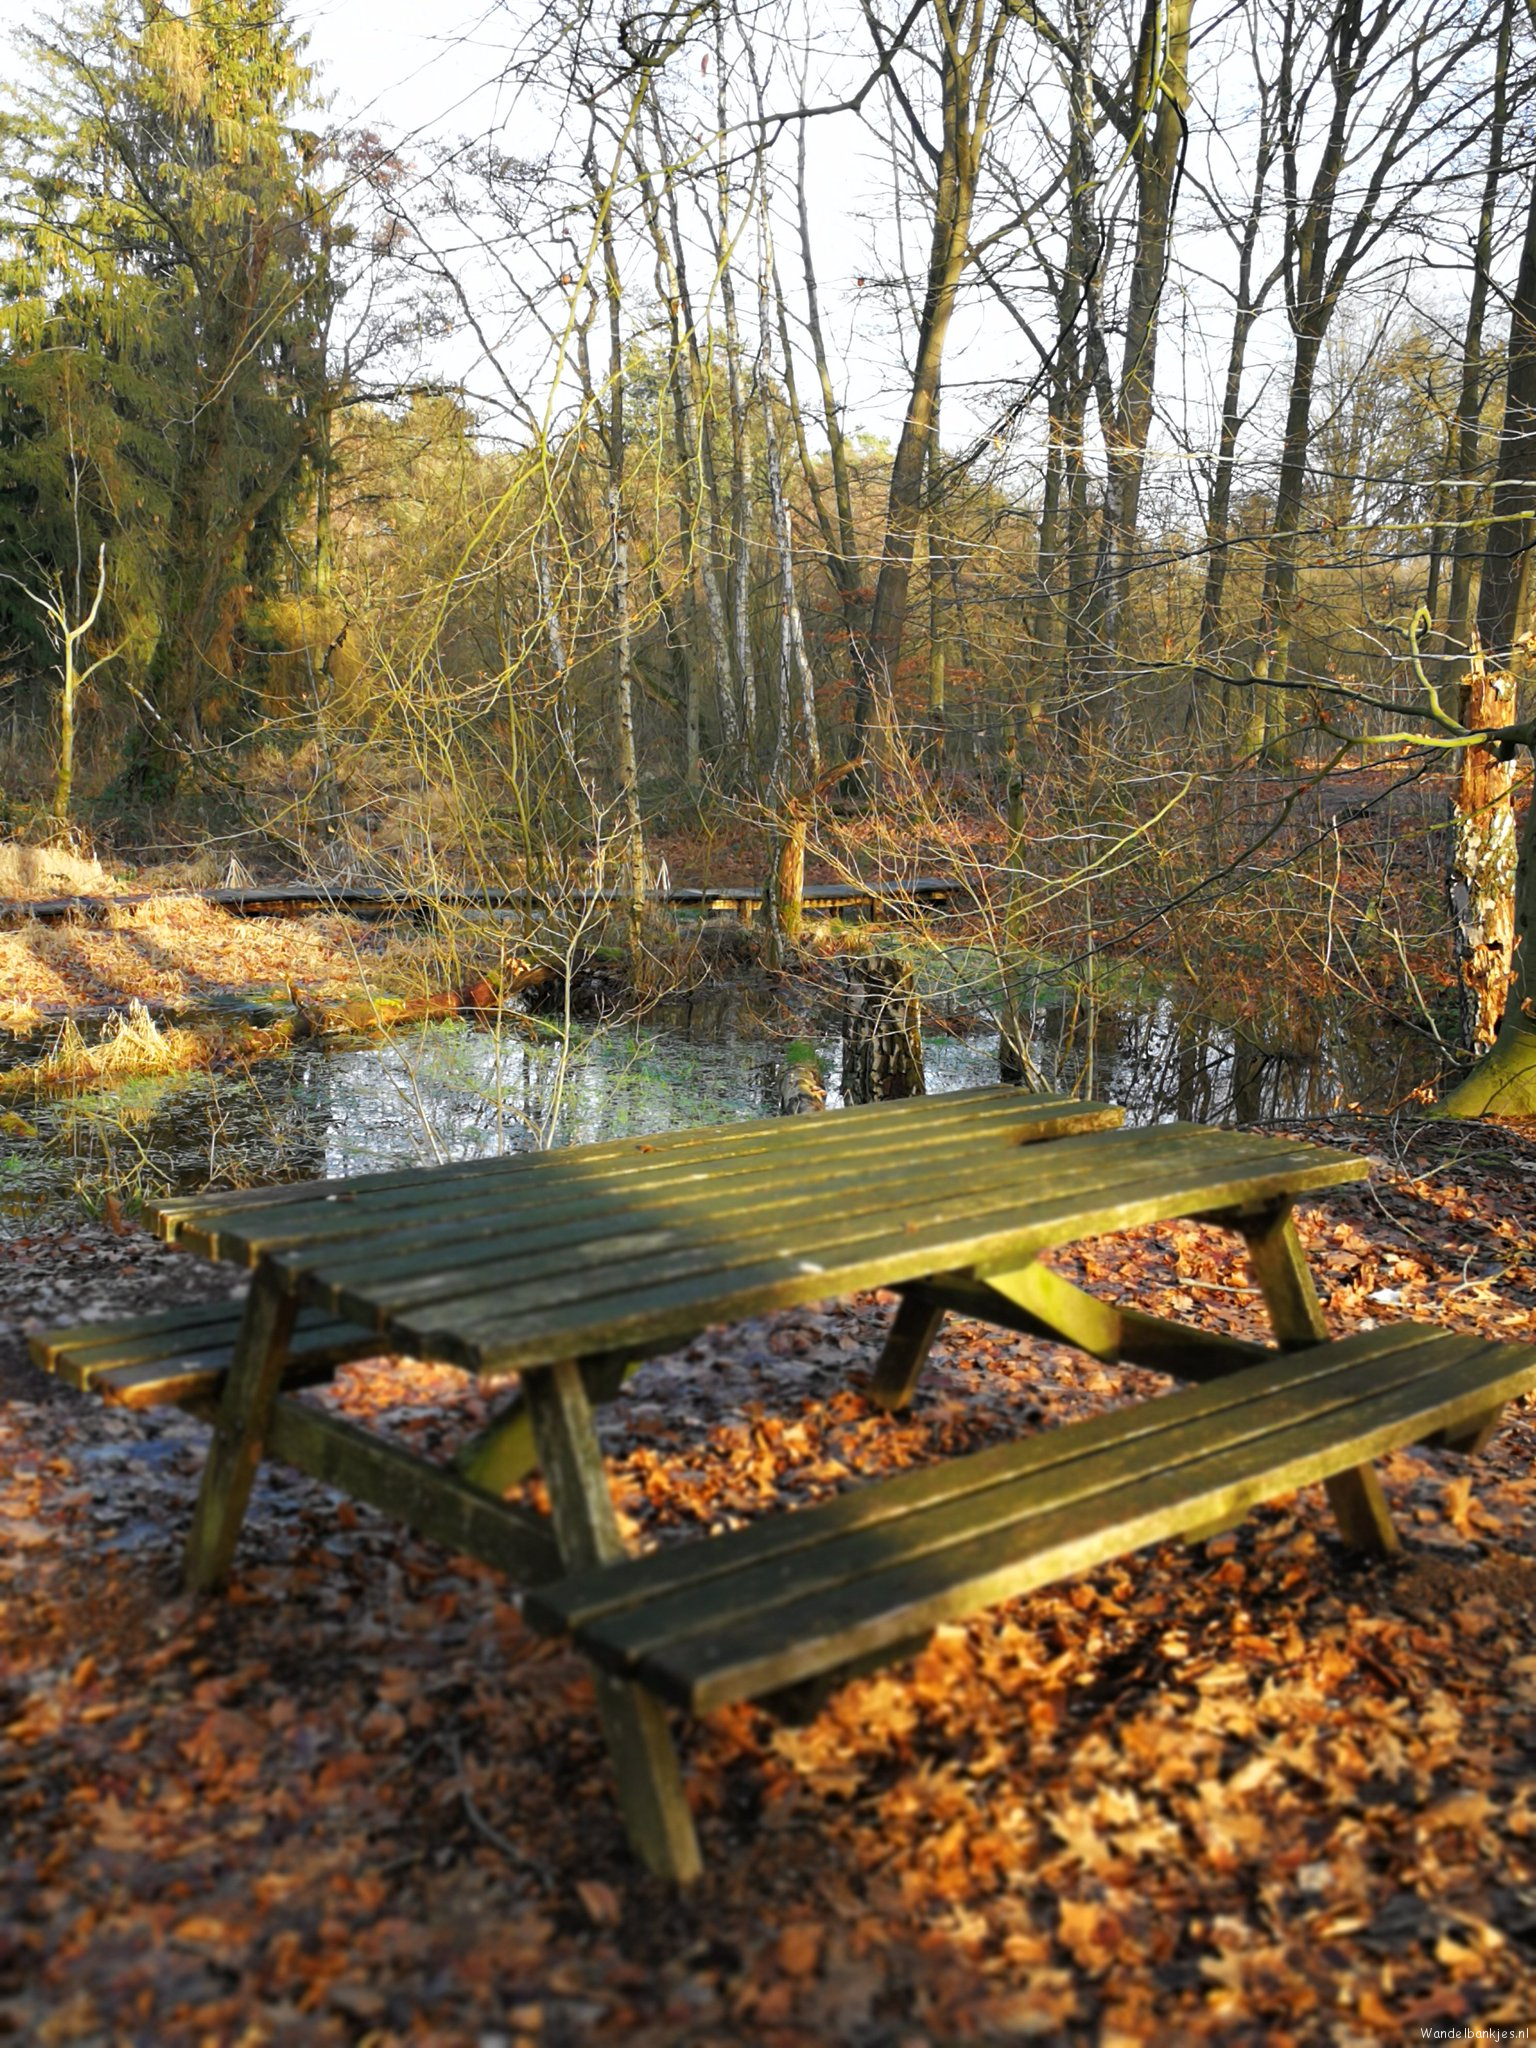 rt-walking pleasure59-picnic table-along-the-swalm-in-swalms-this-is-sun-lovely-place-in-a-beautiful-environment-walking benches-http